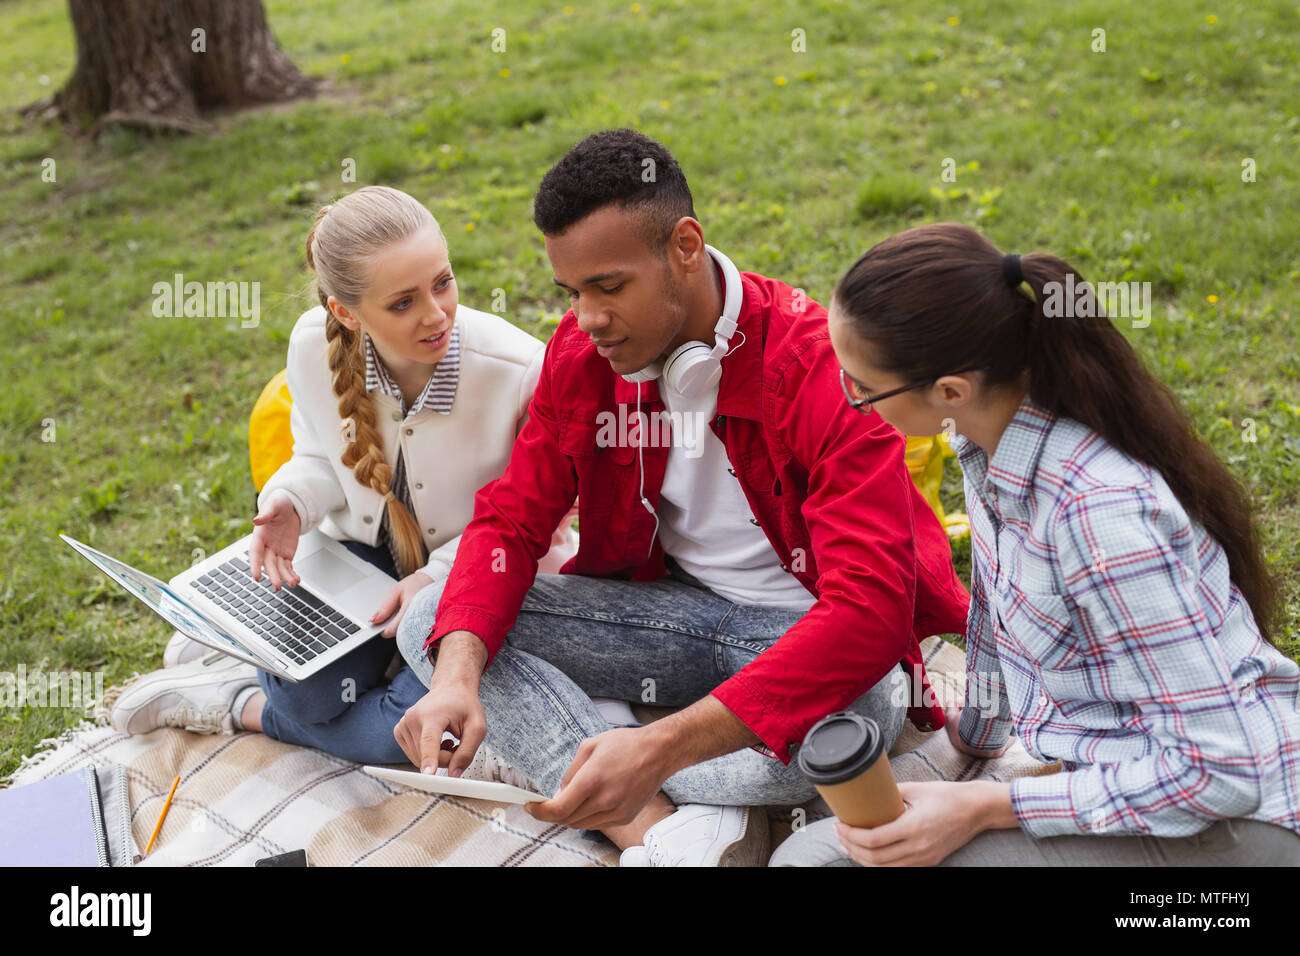 Three young students discussing their student life - Stock Image